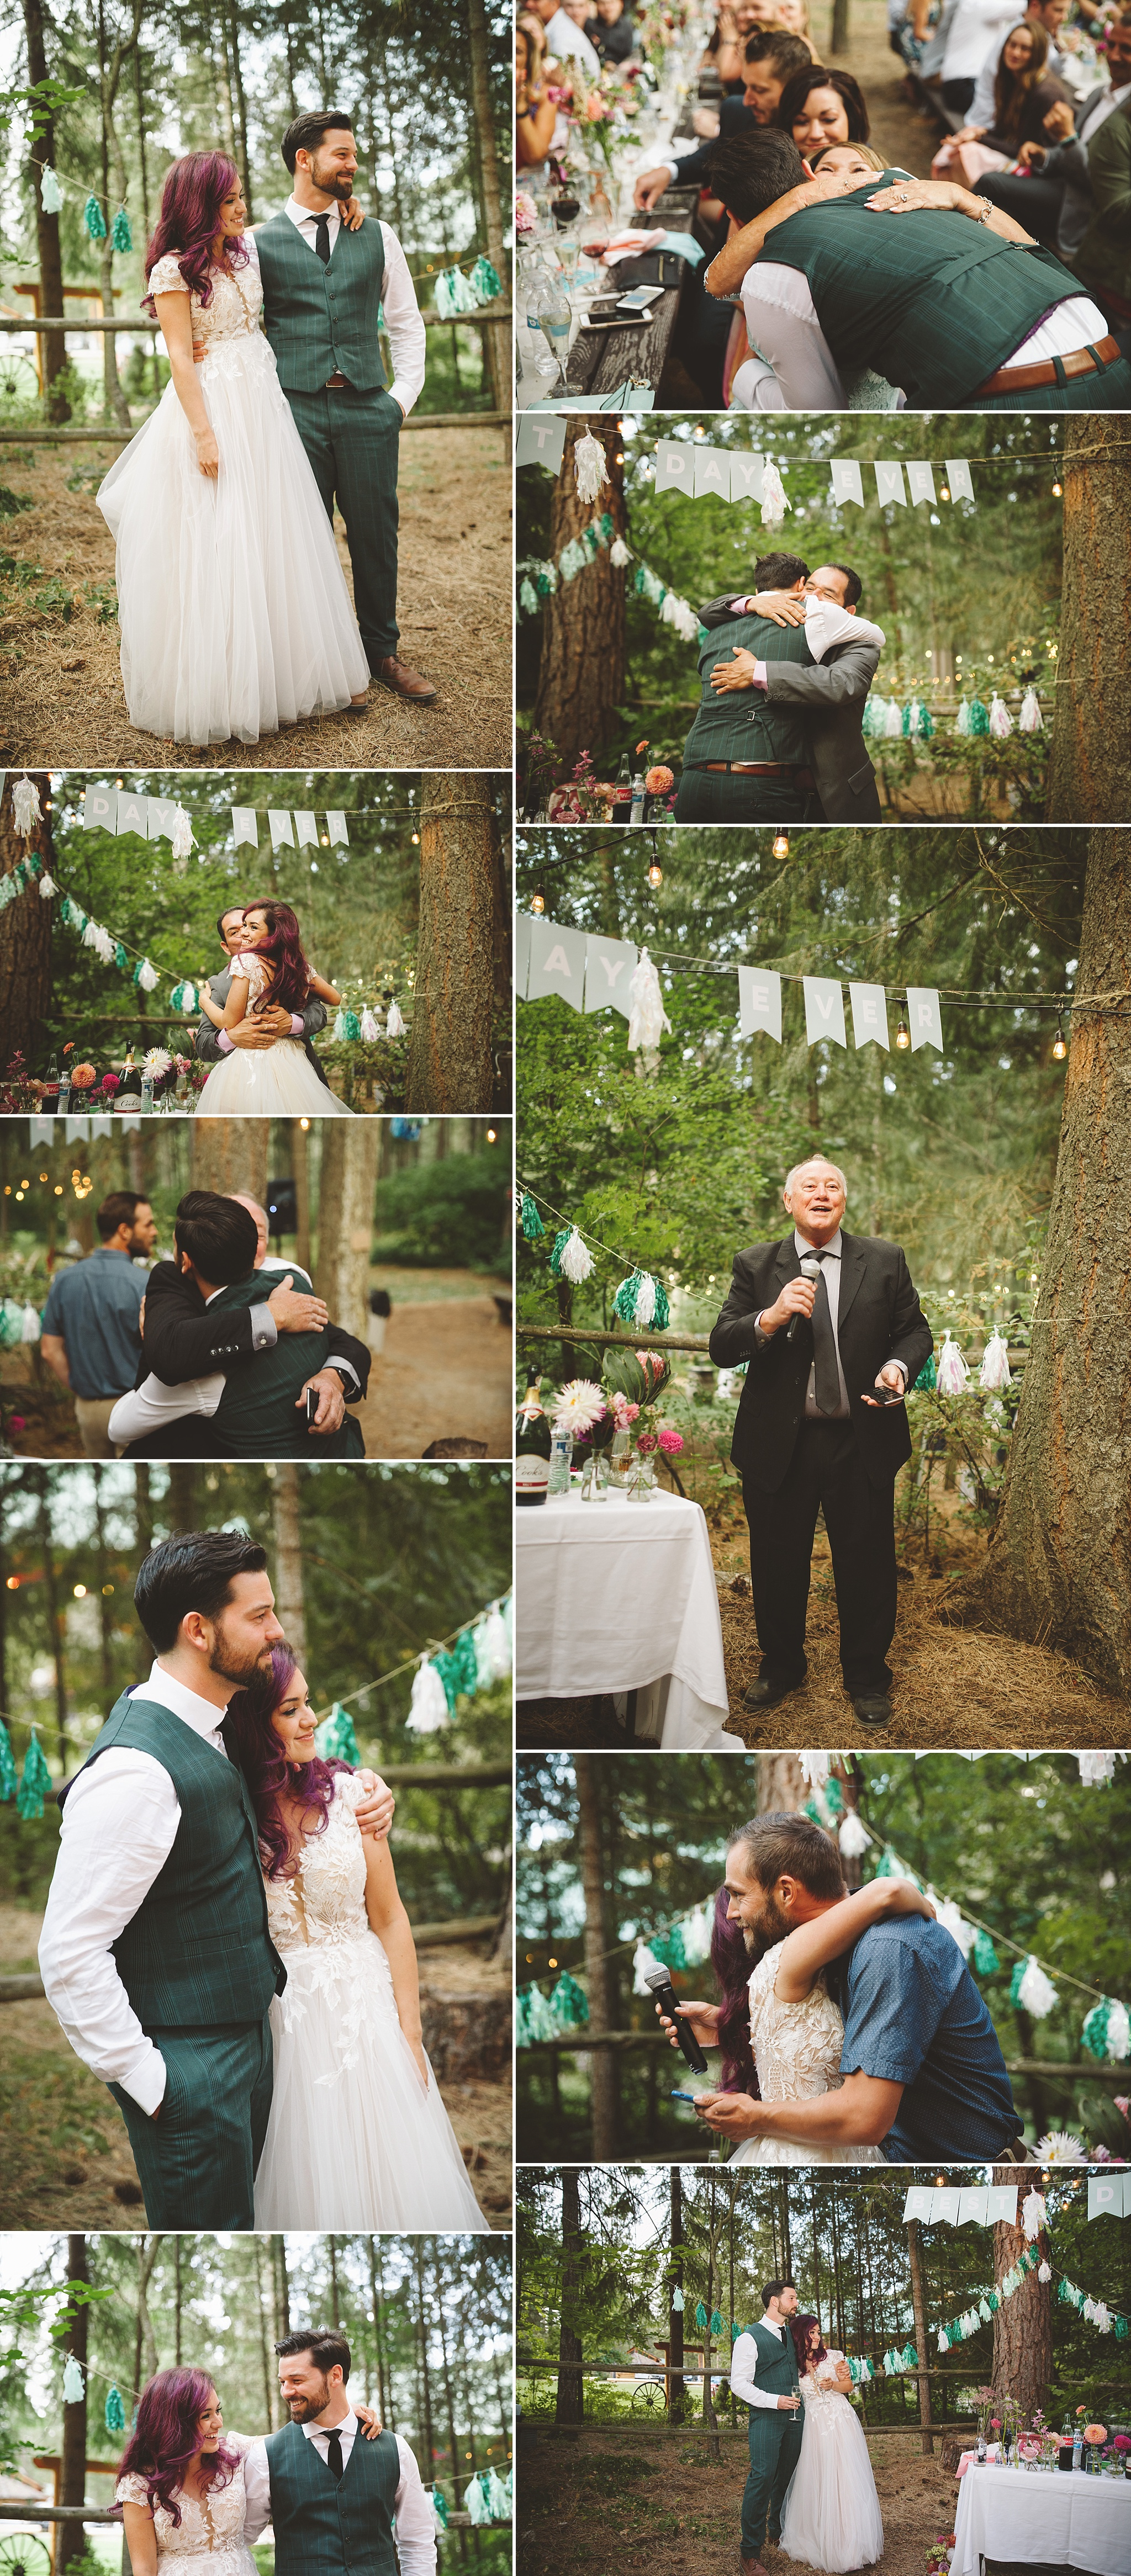 wedding speaches at PNW outdoor wedding